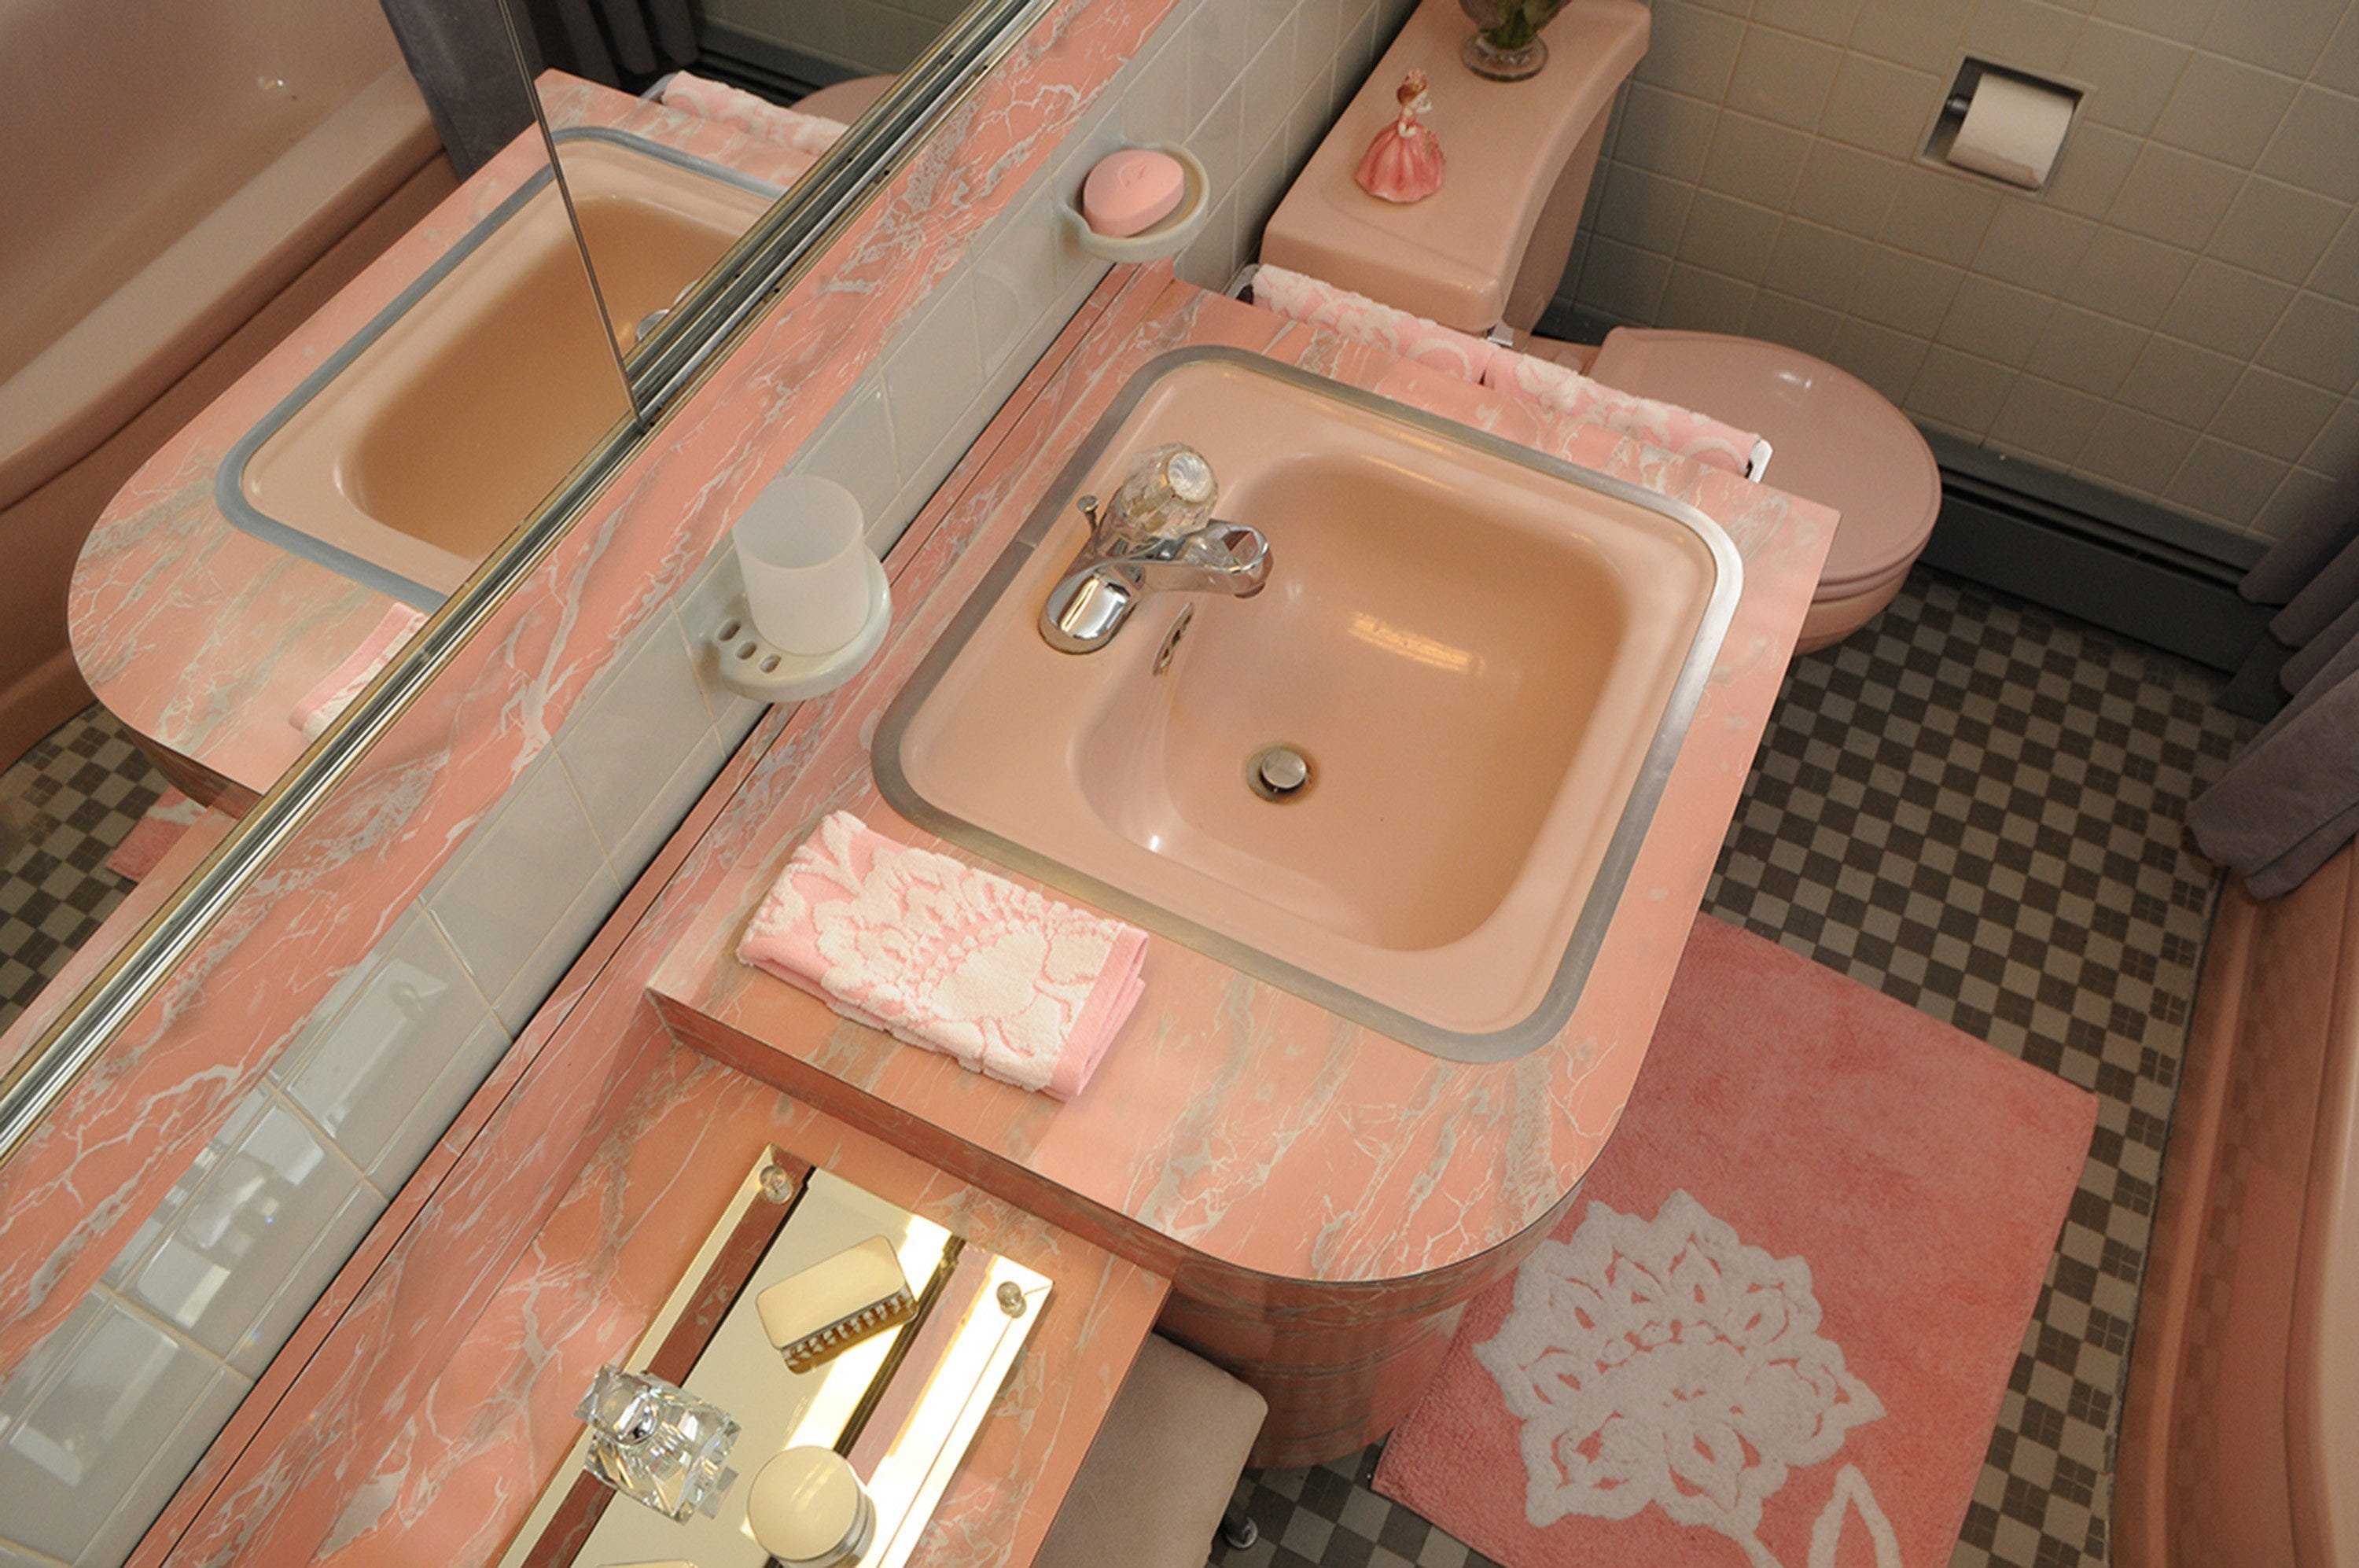 Those 1950s pink bathrooms, hot or not?